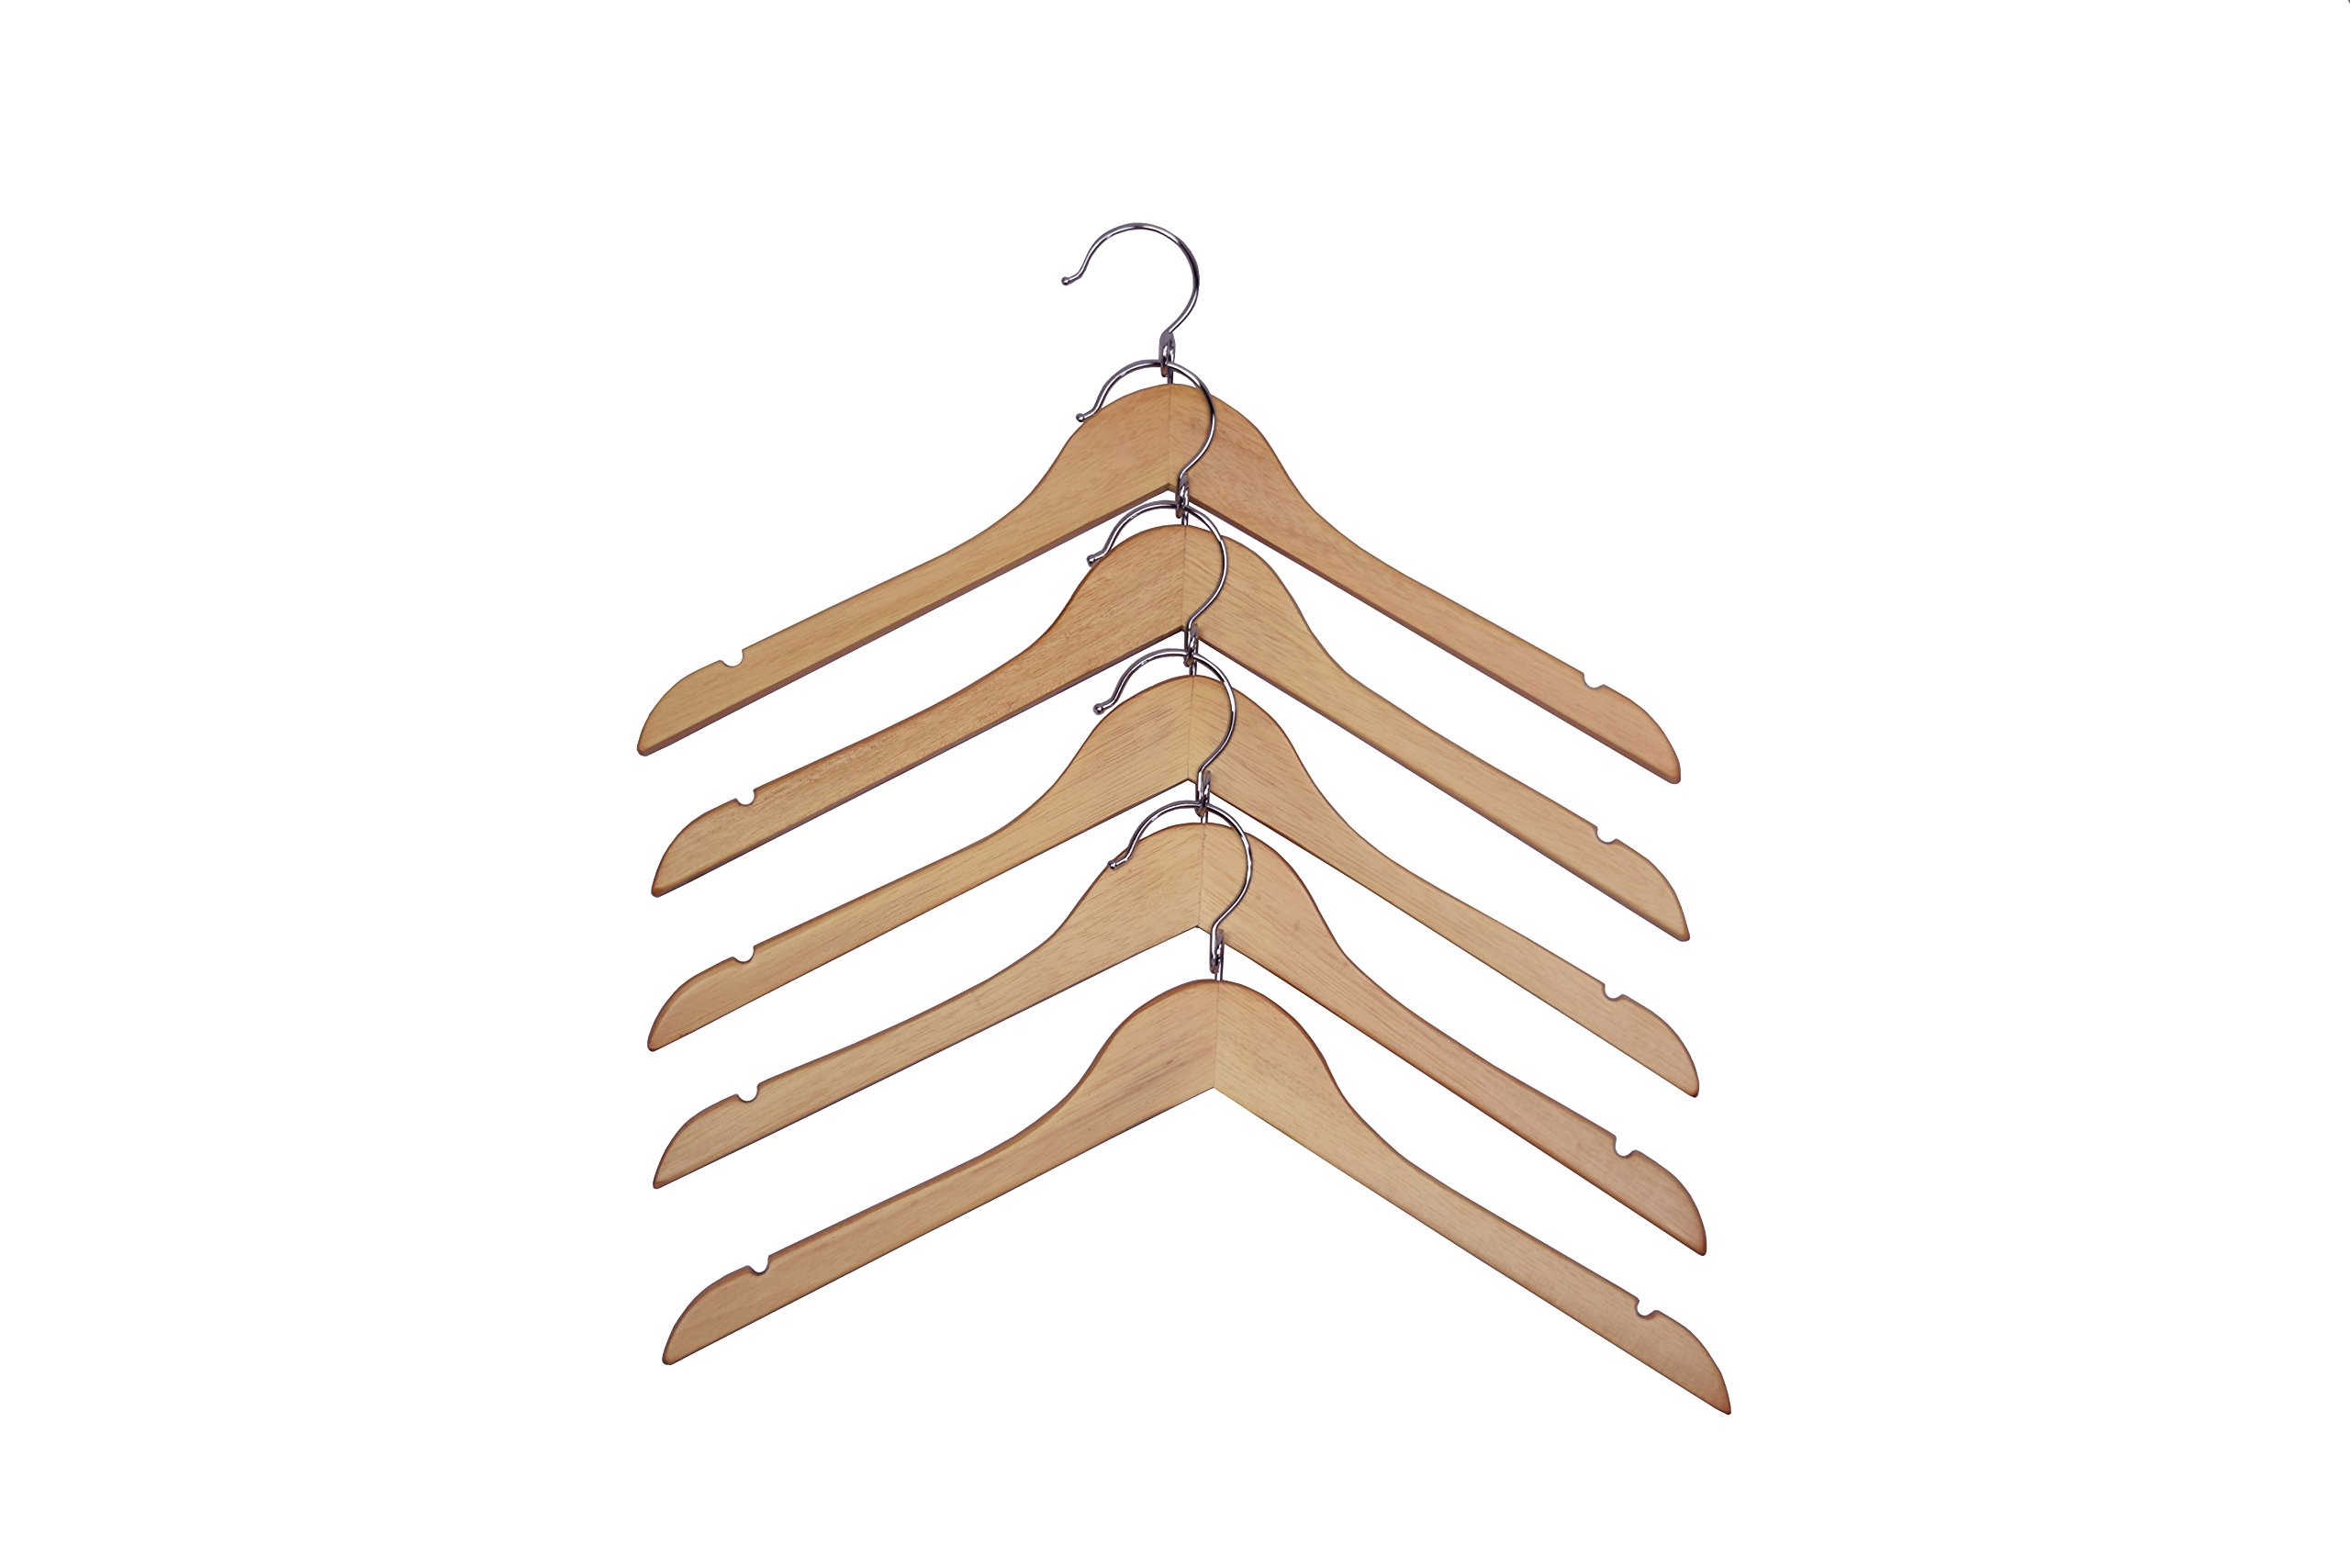 Proman Products Kascade Wooden Hanger with Shoulder Notches, Natural, 50 Piece / Box by Proman Products